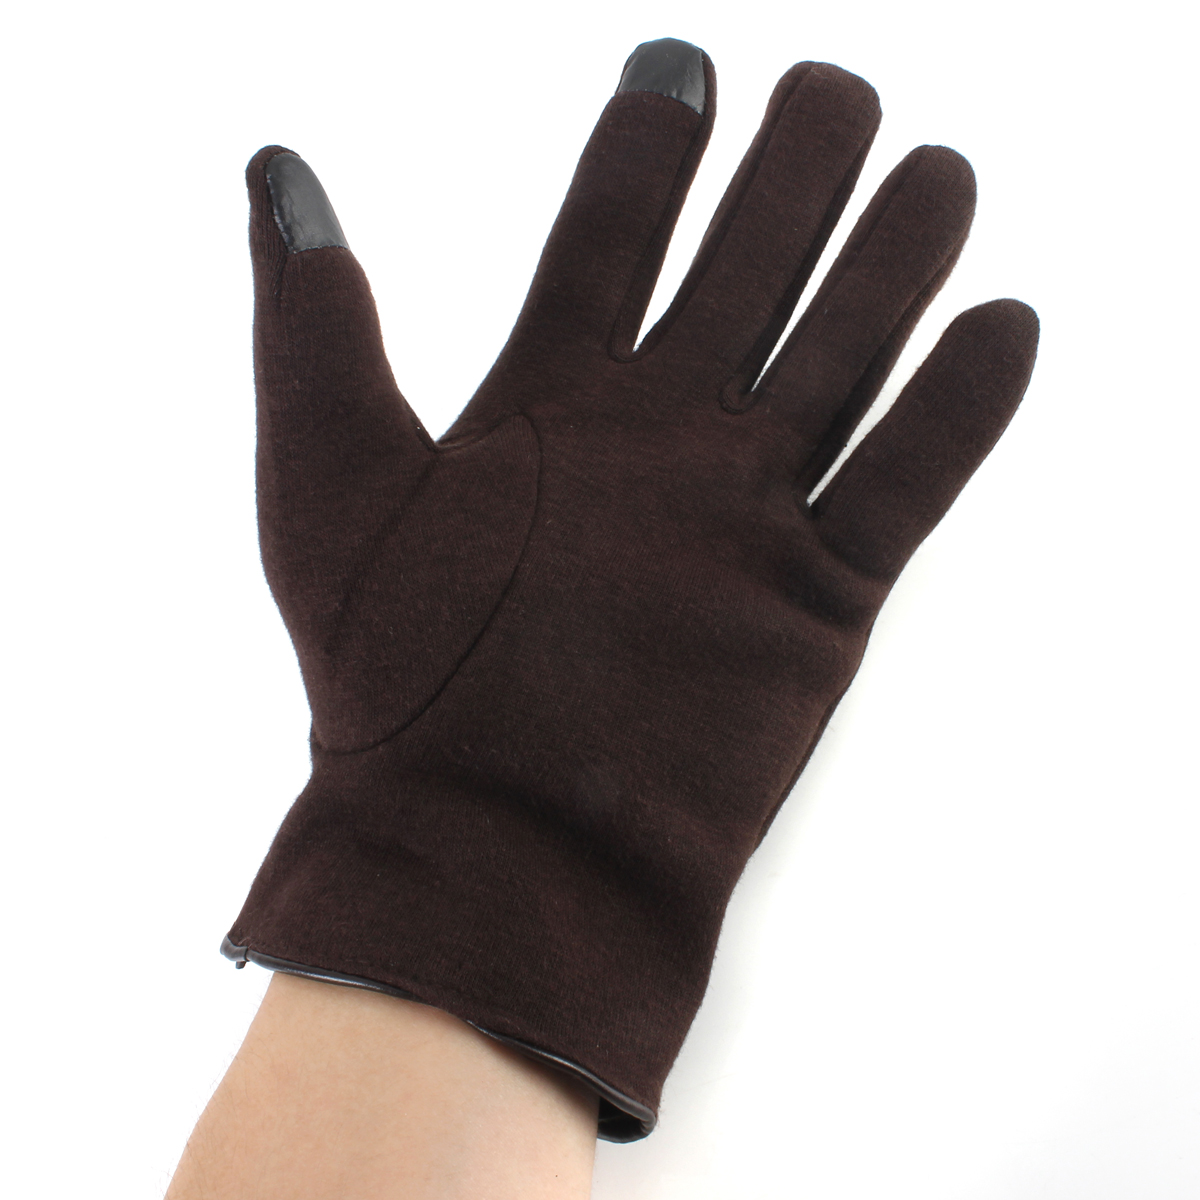 WINDPROOF Magic Touch screen / Texting Winter Gloves for